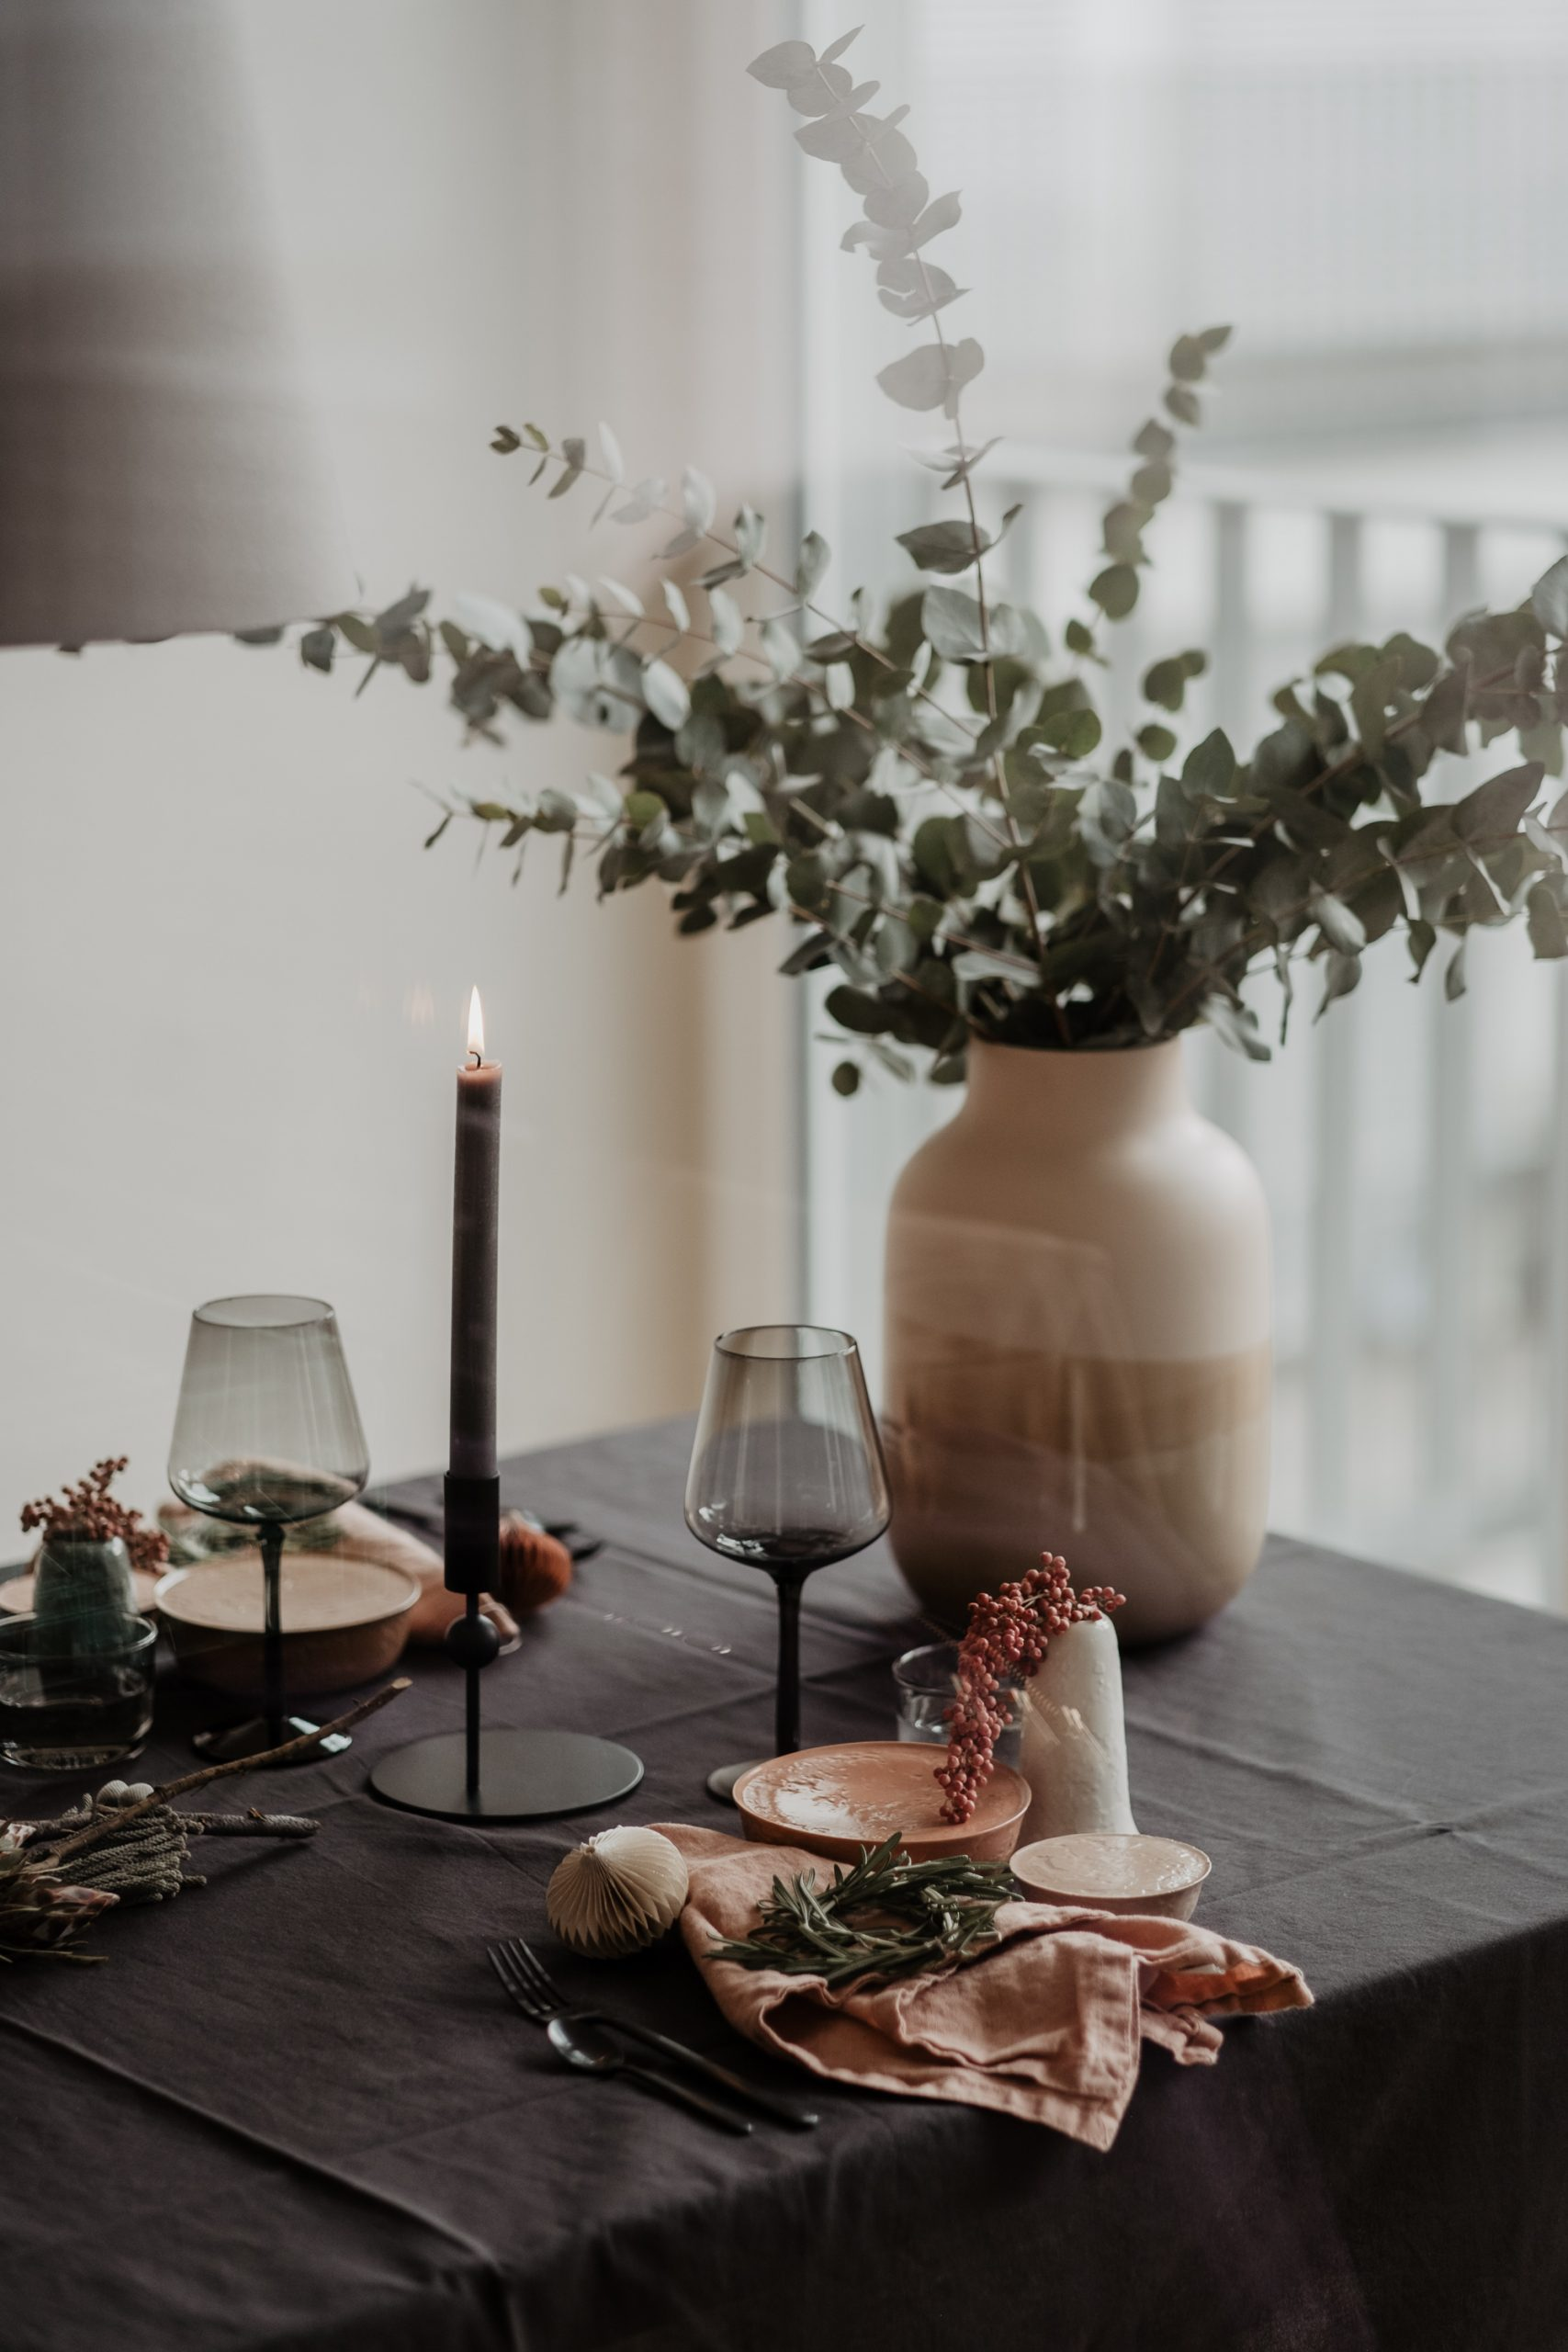 Christmas table setting for Zurich Wonderland blog